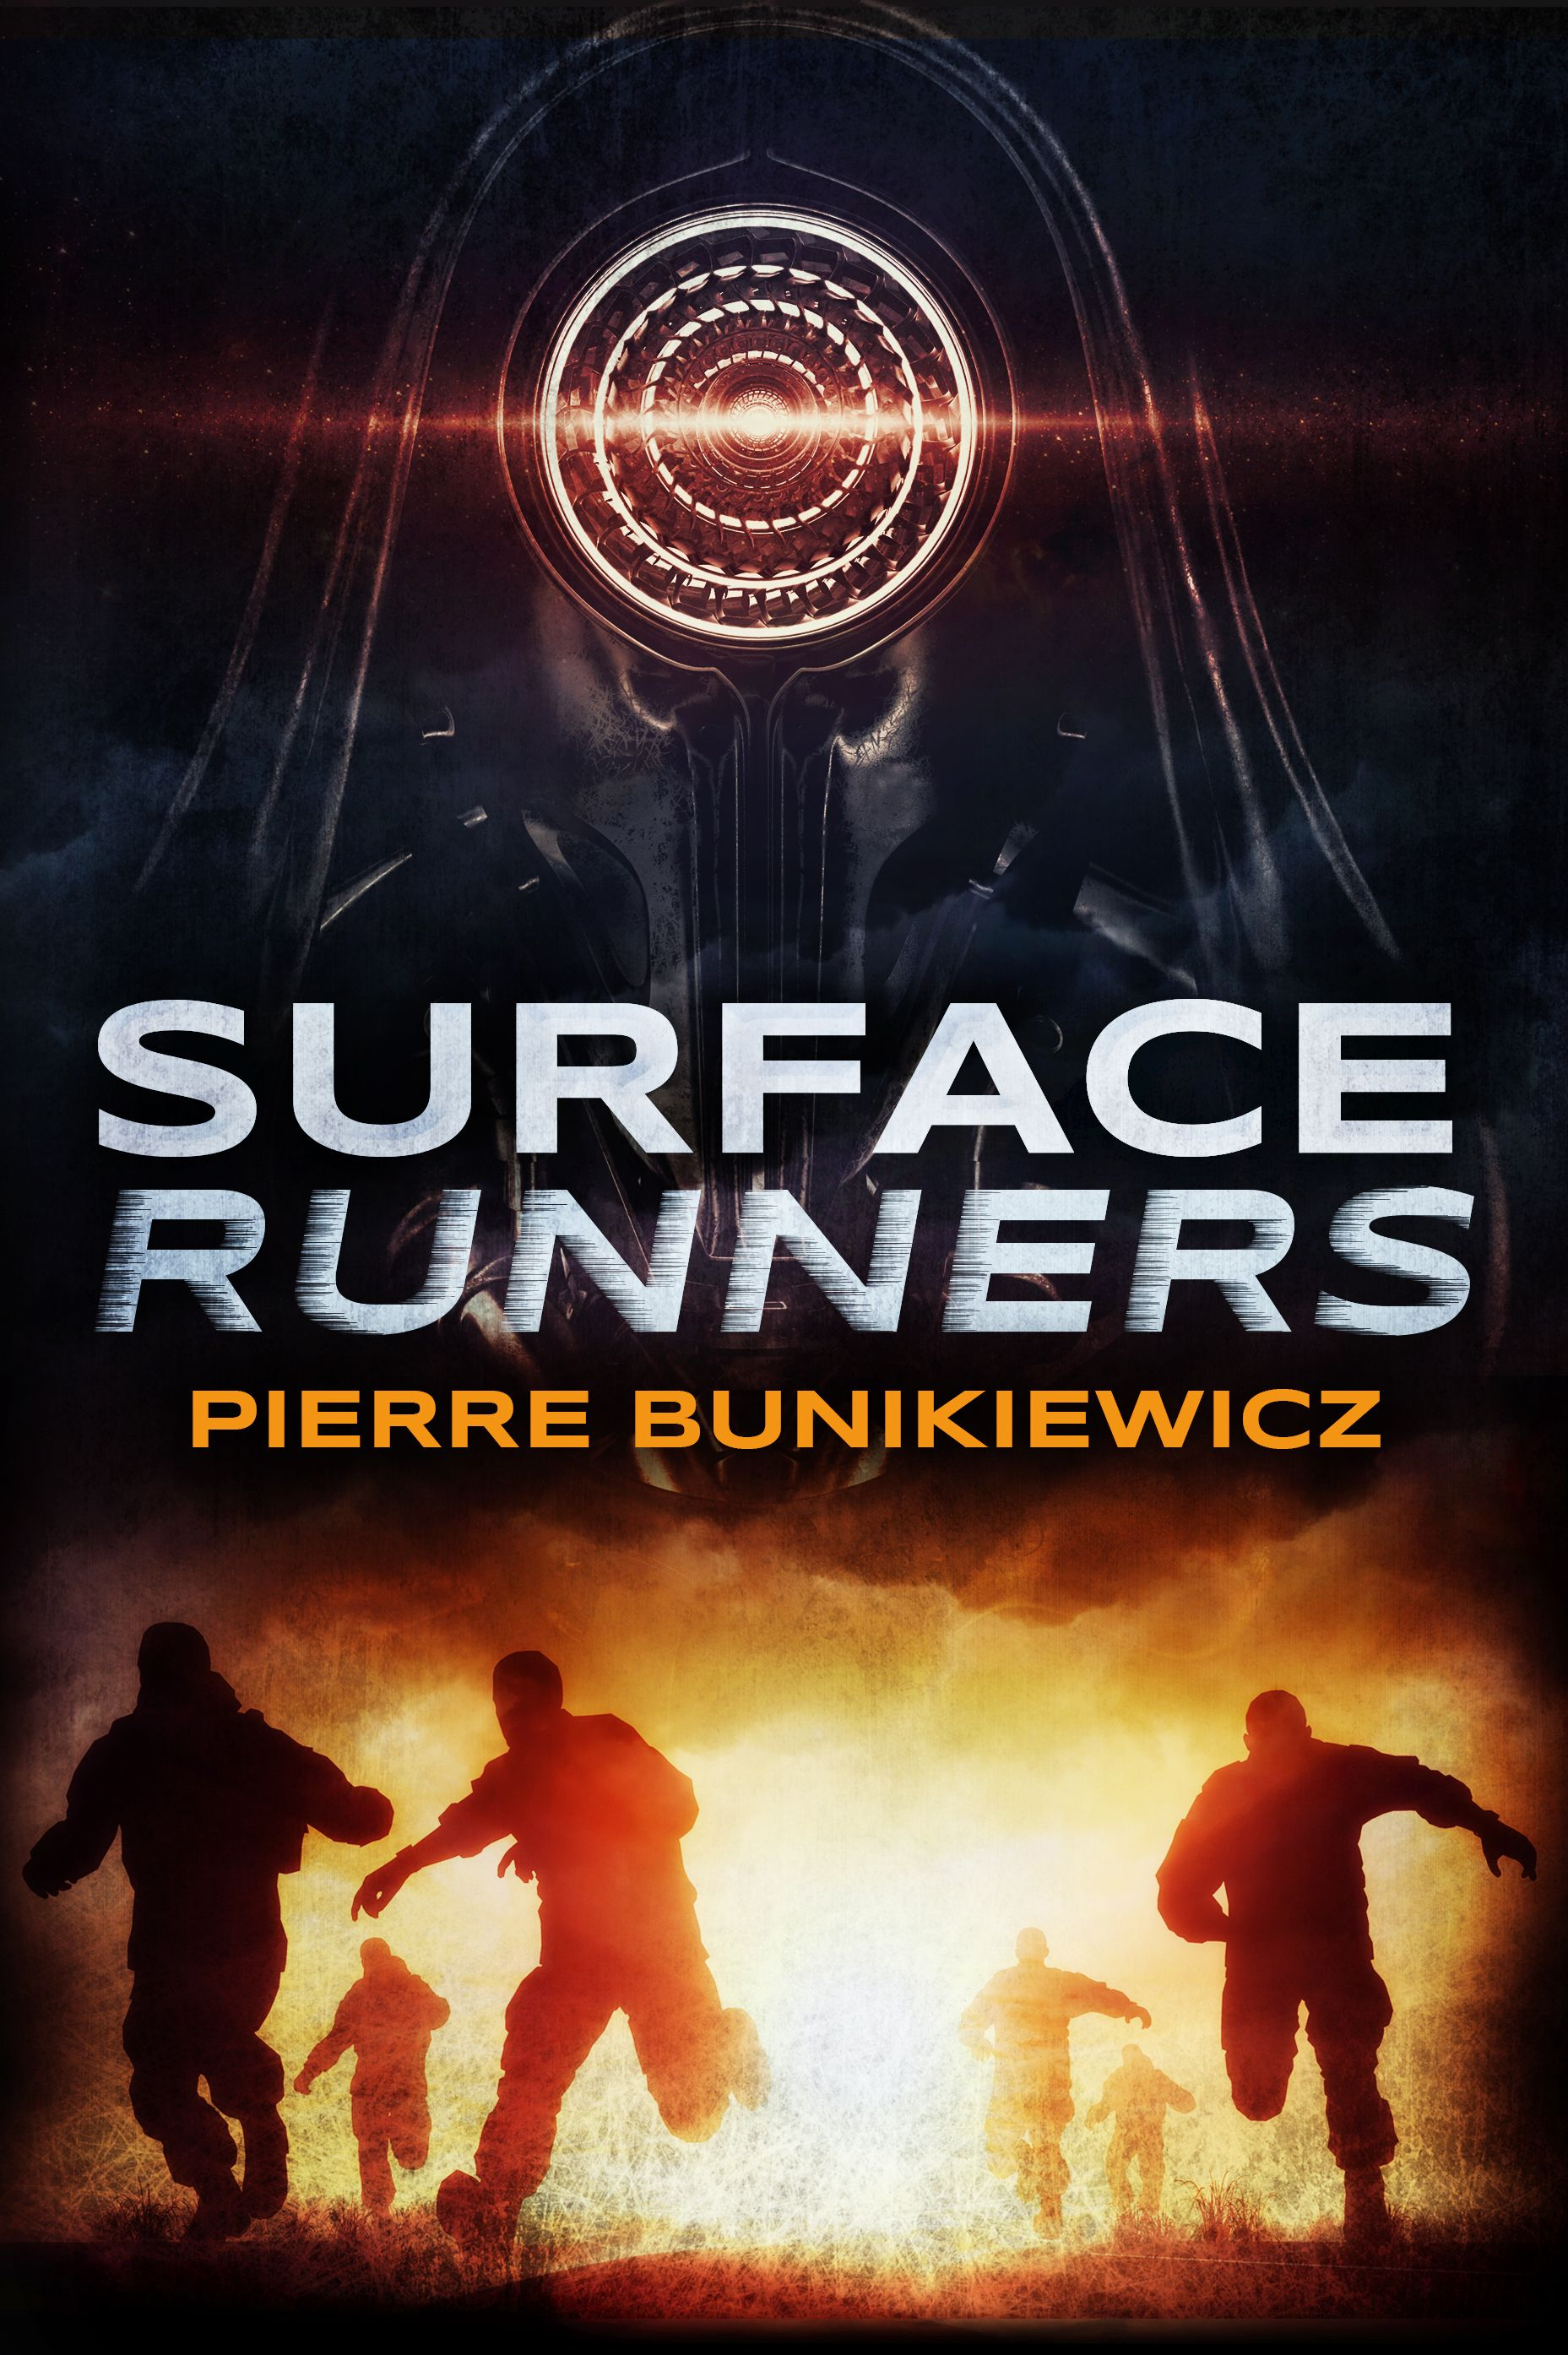 Surface Runners scifi young adult book cover design